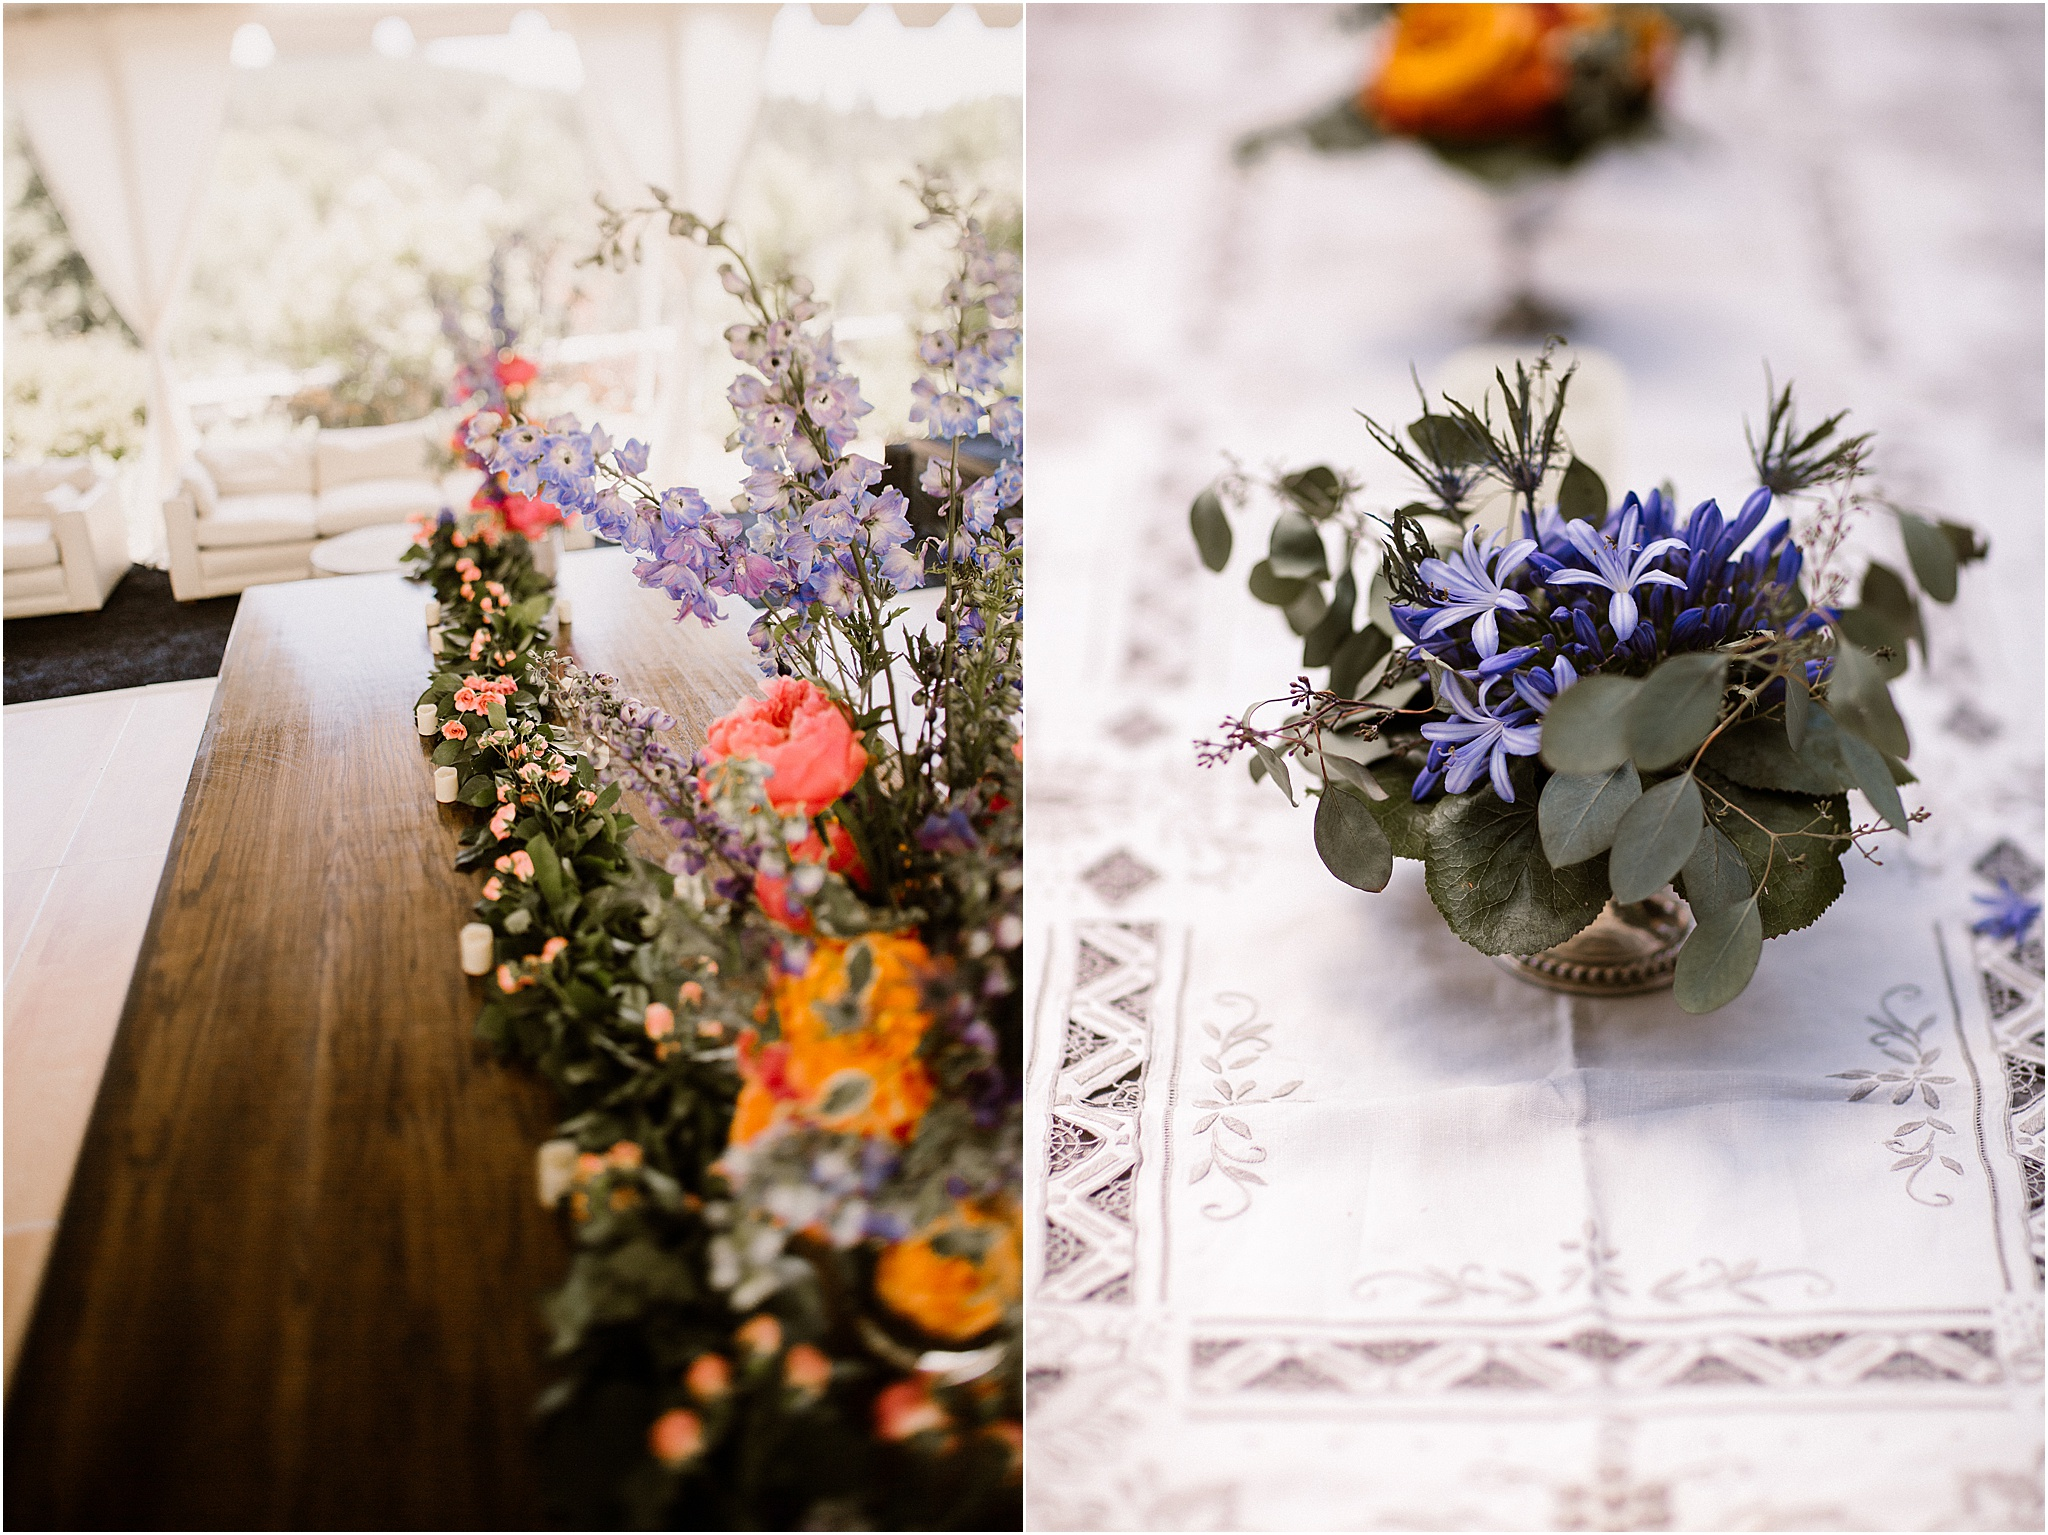 AMELIA_JASON_SANTA FE_ WEDDING_BLUE ROSE PHOTOGRAPHY12